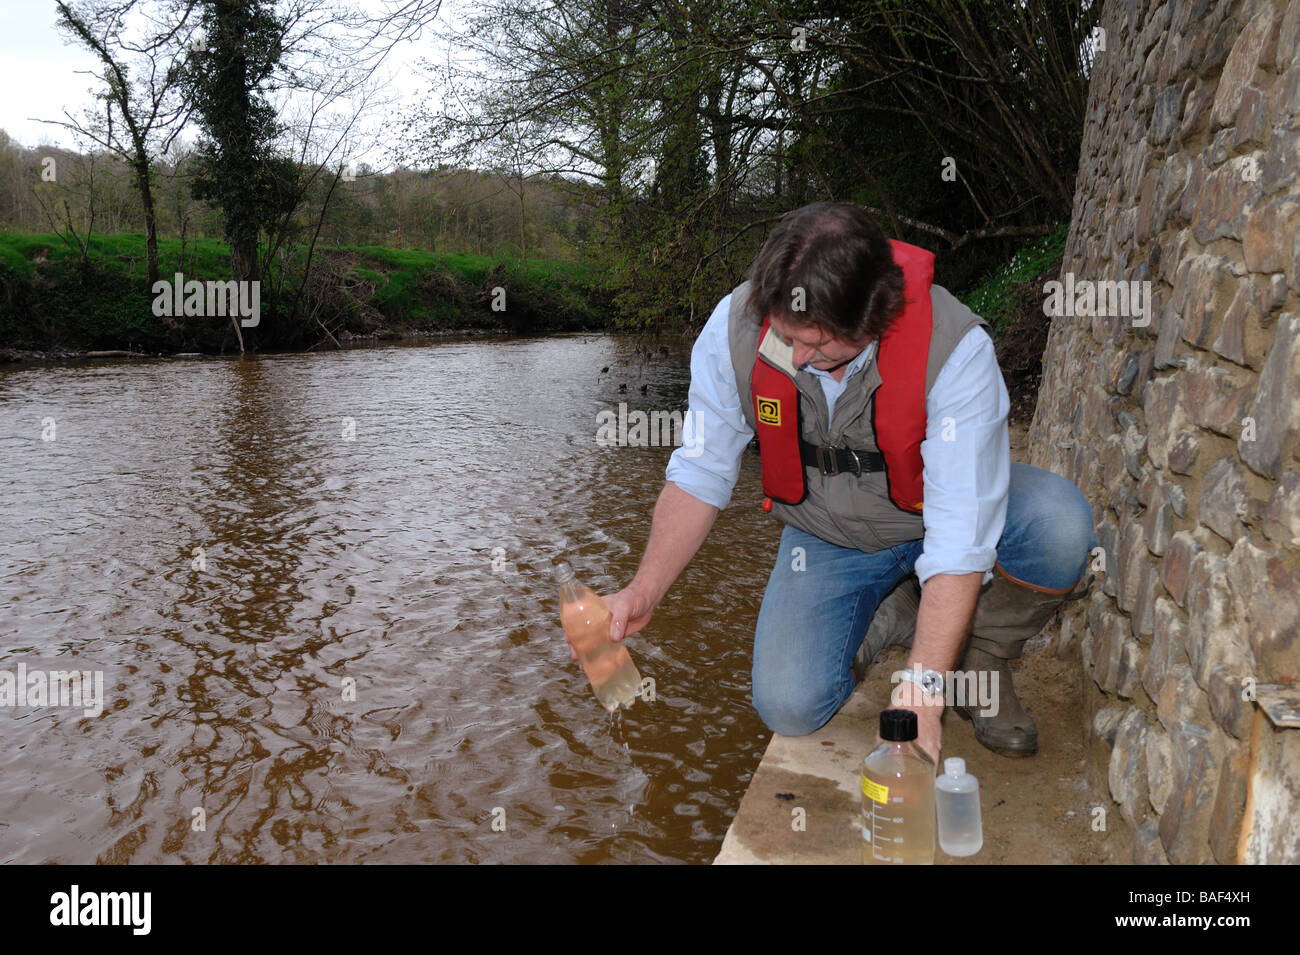 Environment Agency officer takes water sample from polluted river Teign after incident at nearby quarry South Devon - Stock Image